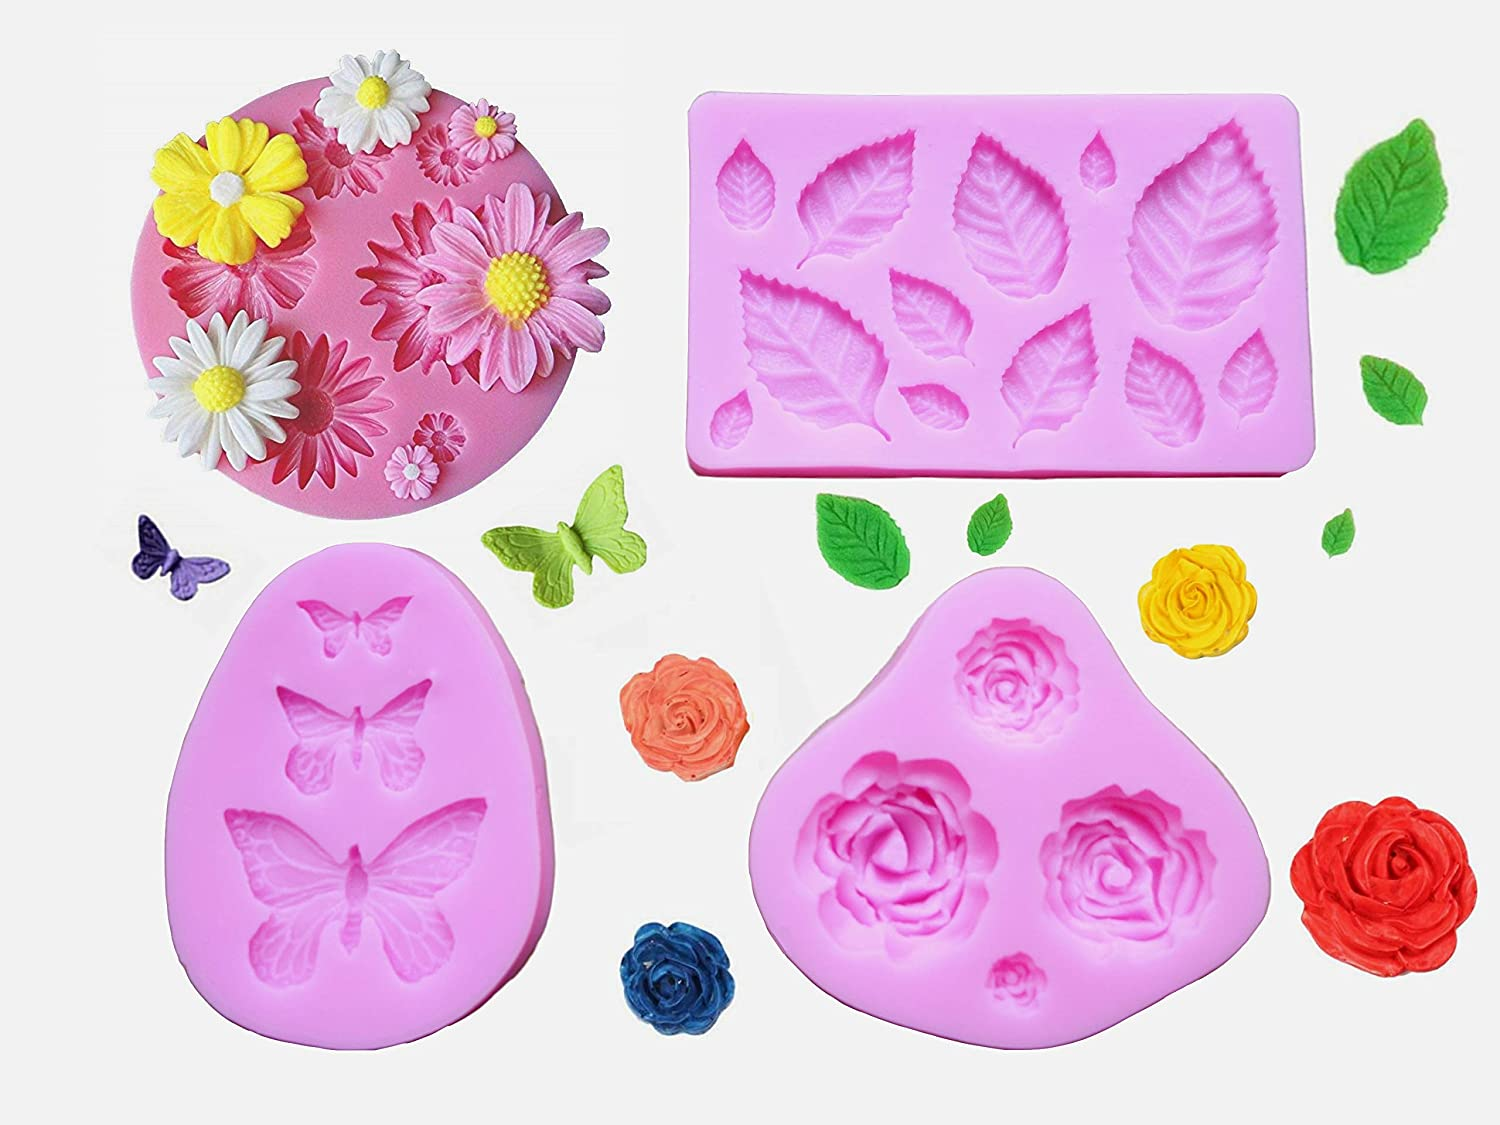 Pack Classic Fresno Mall of 4 Cake Decoration Butterfly Flower Leaves Molds Rose